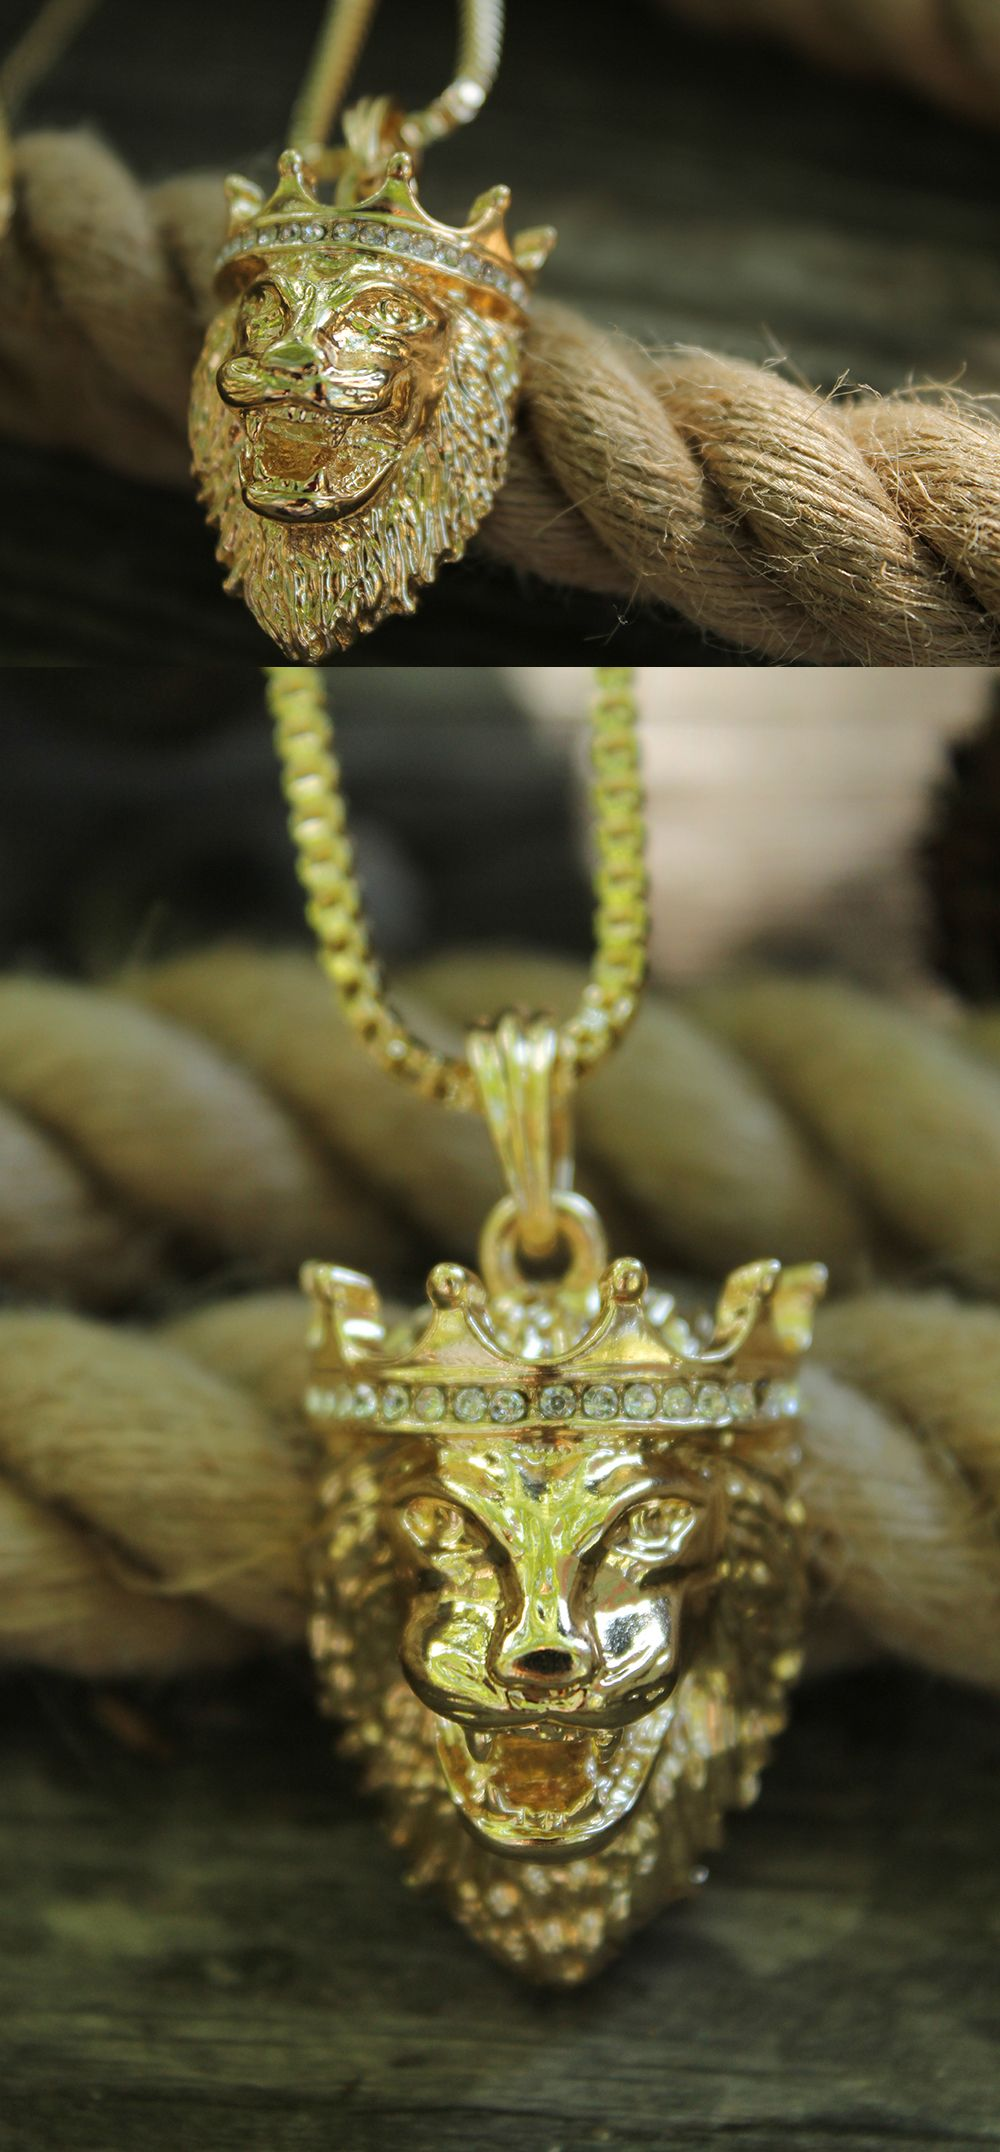 s steel chain matching picture tone gold mens p stainless of pendant lion w necklace head